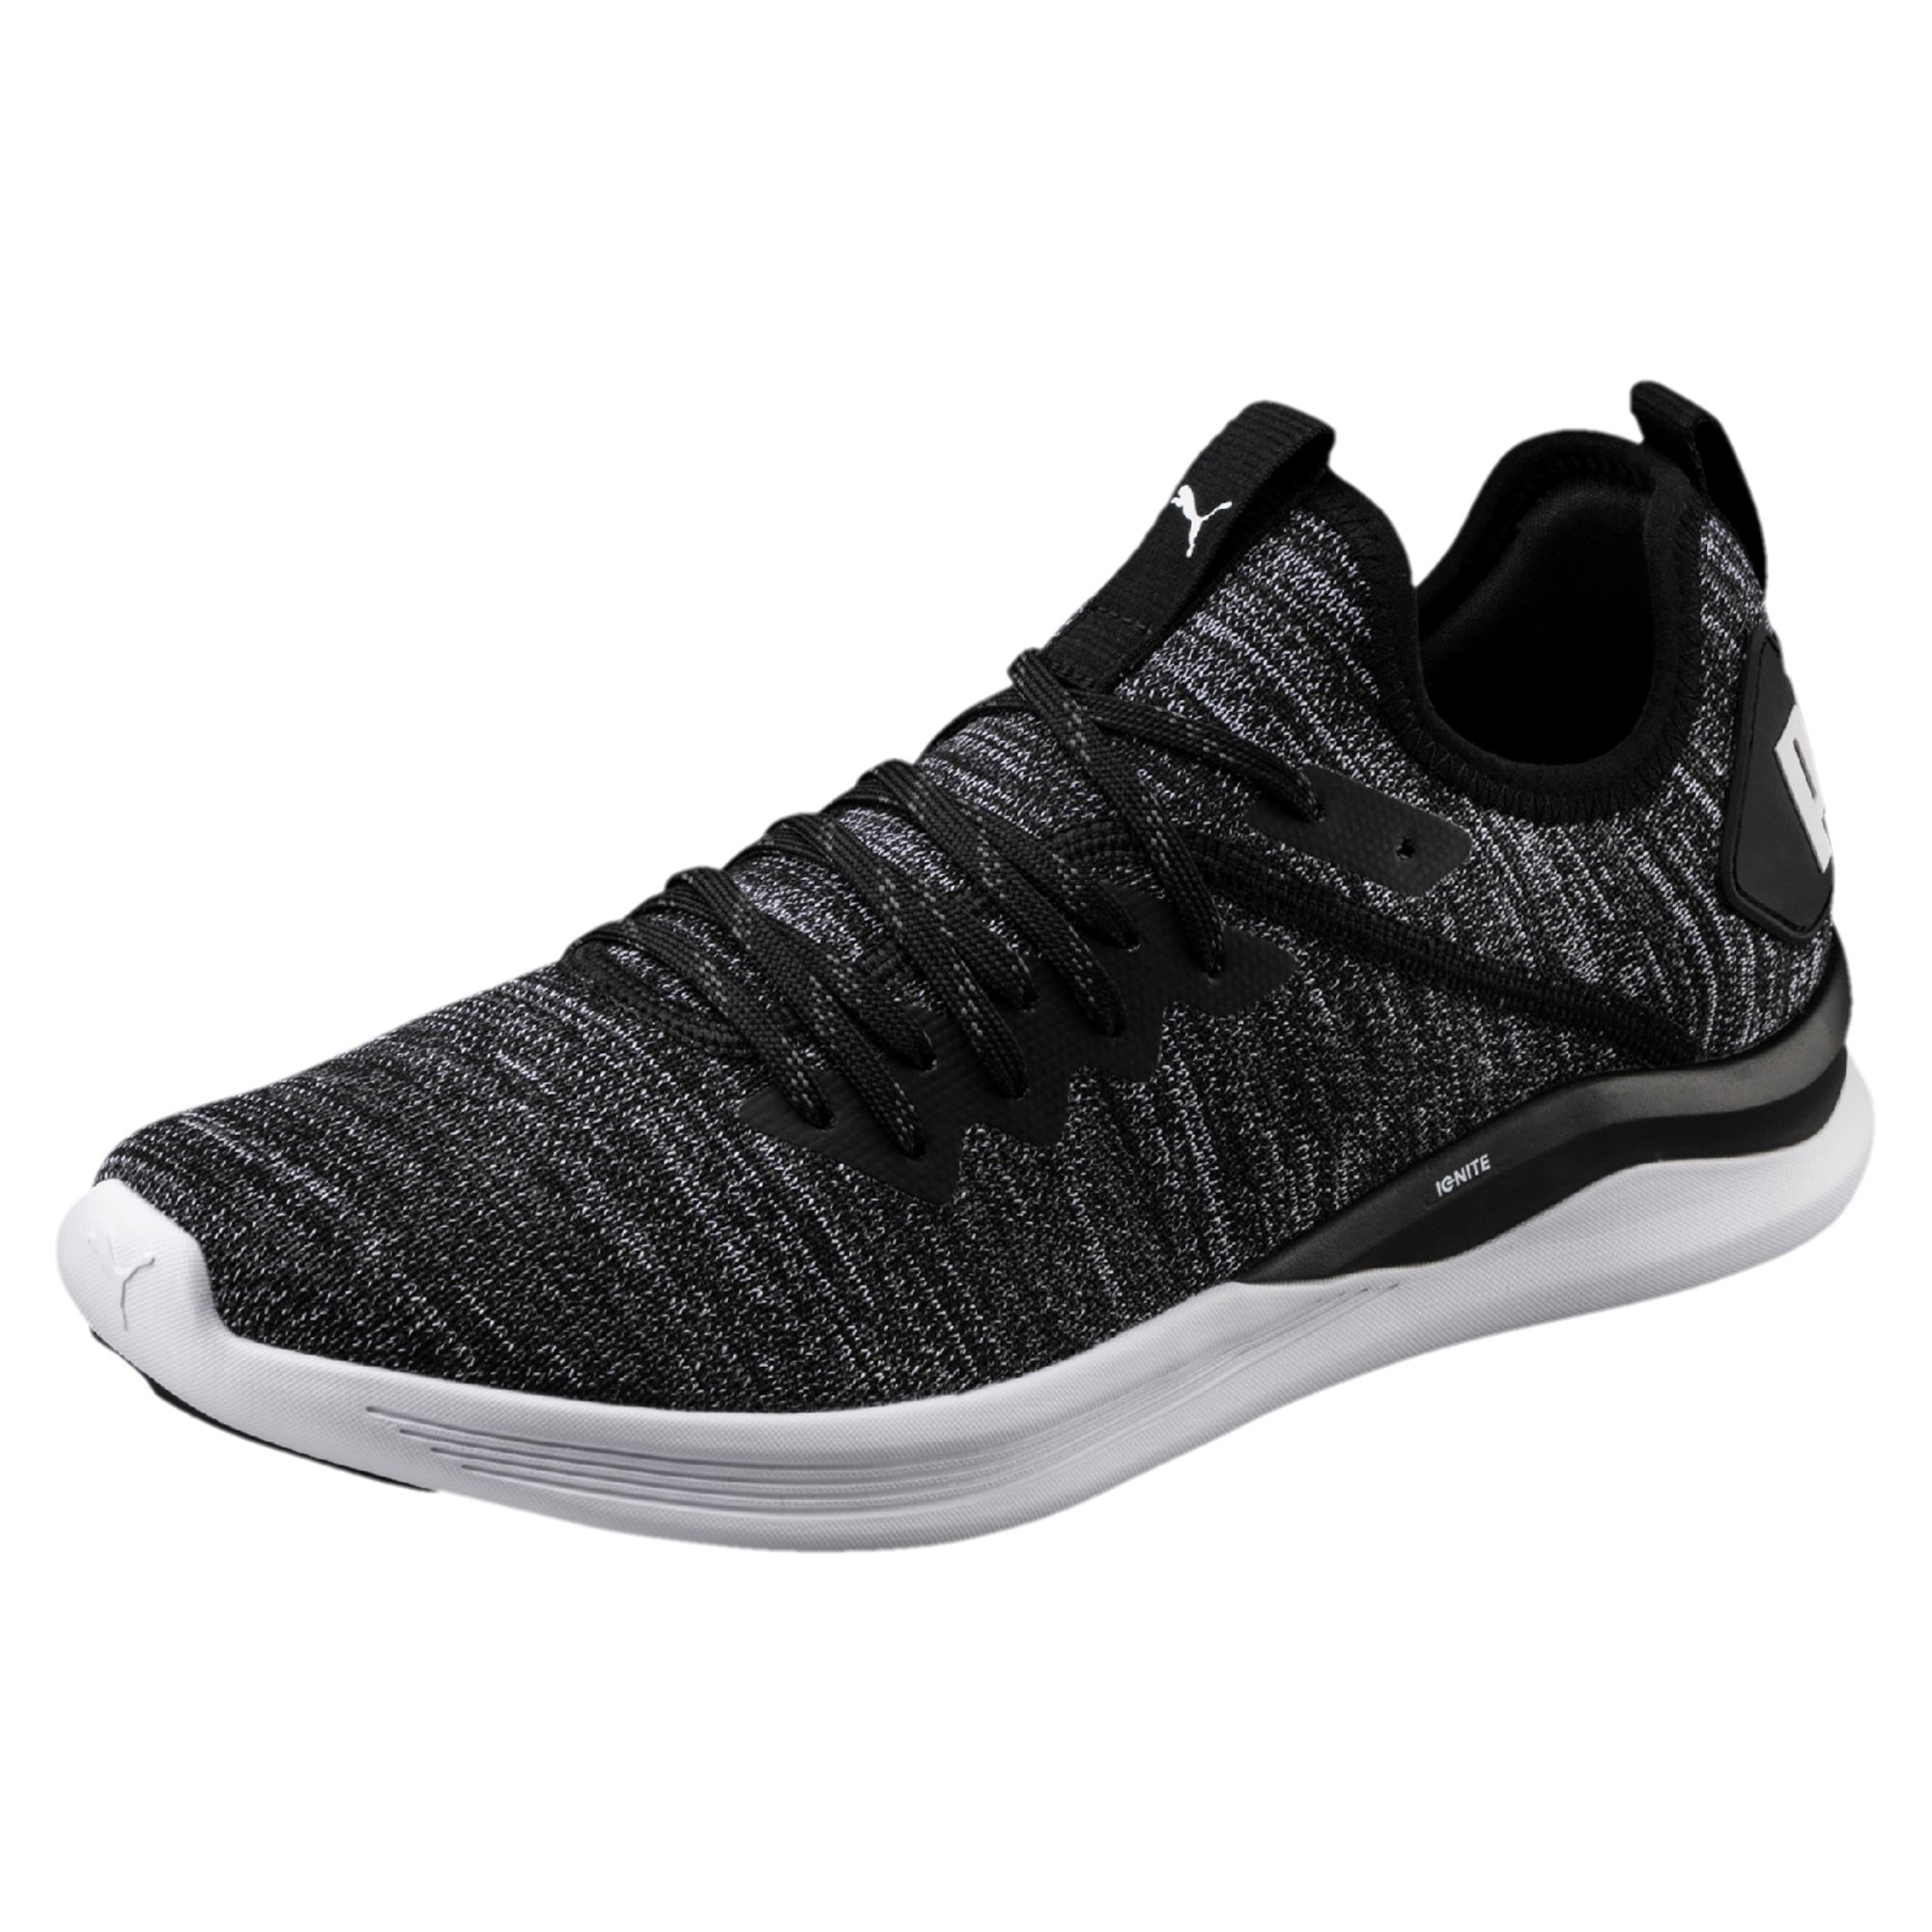 Puma Ignite Flash evoKNIT Laufschuhe